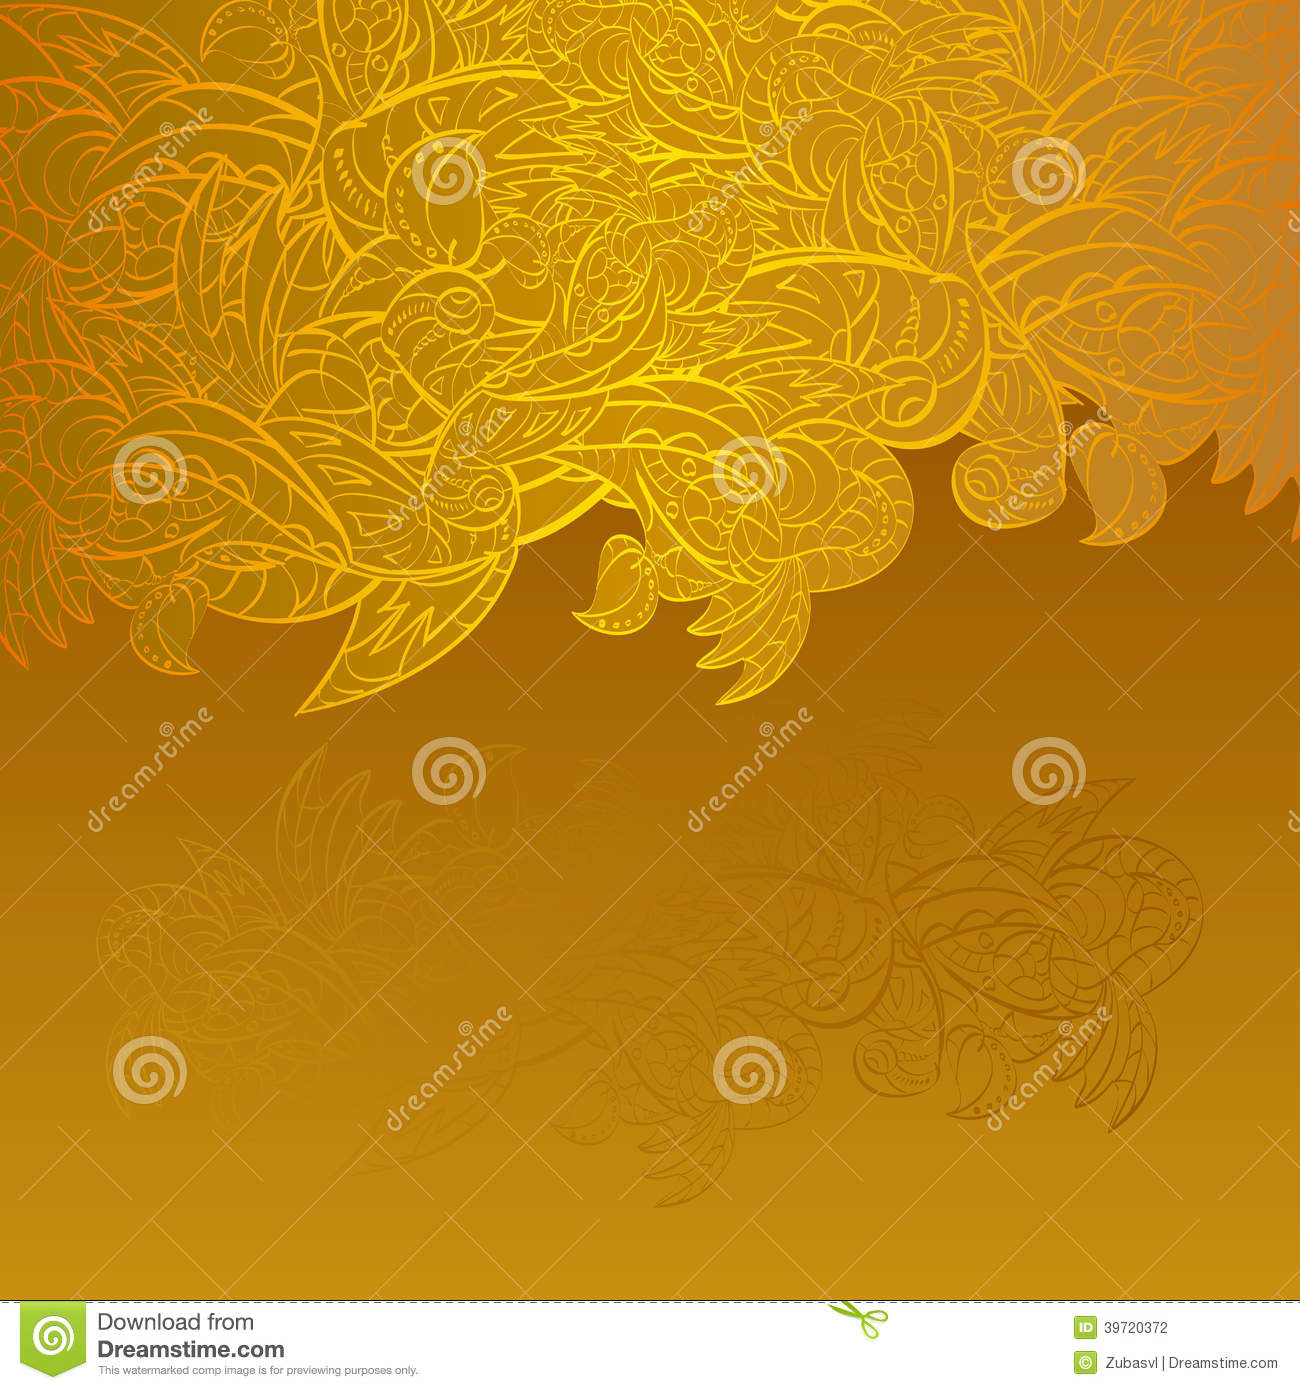 vintage invitation card on gold background with leaves